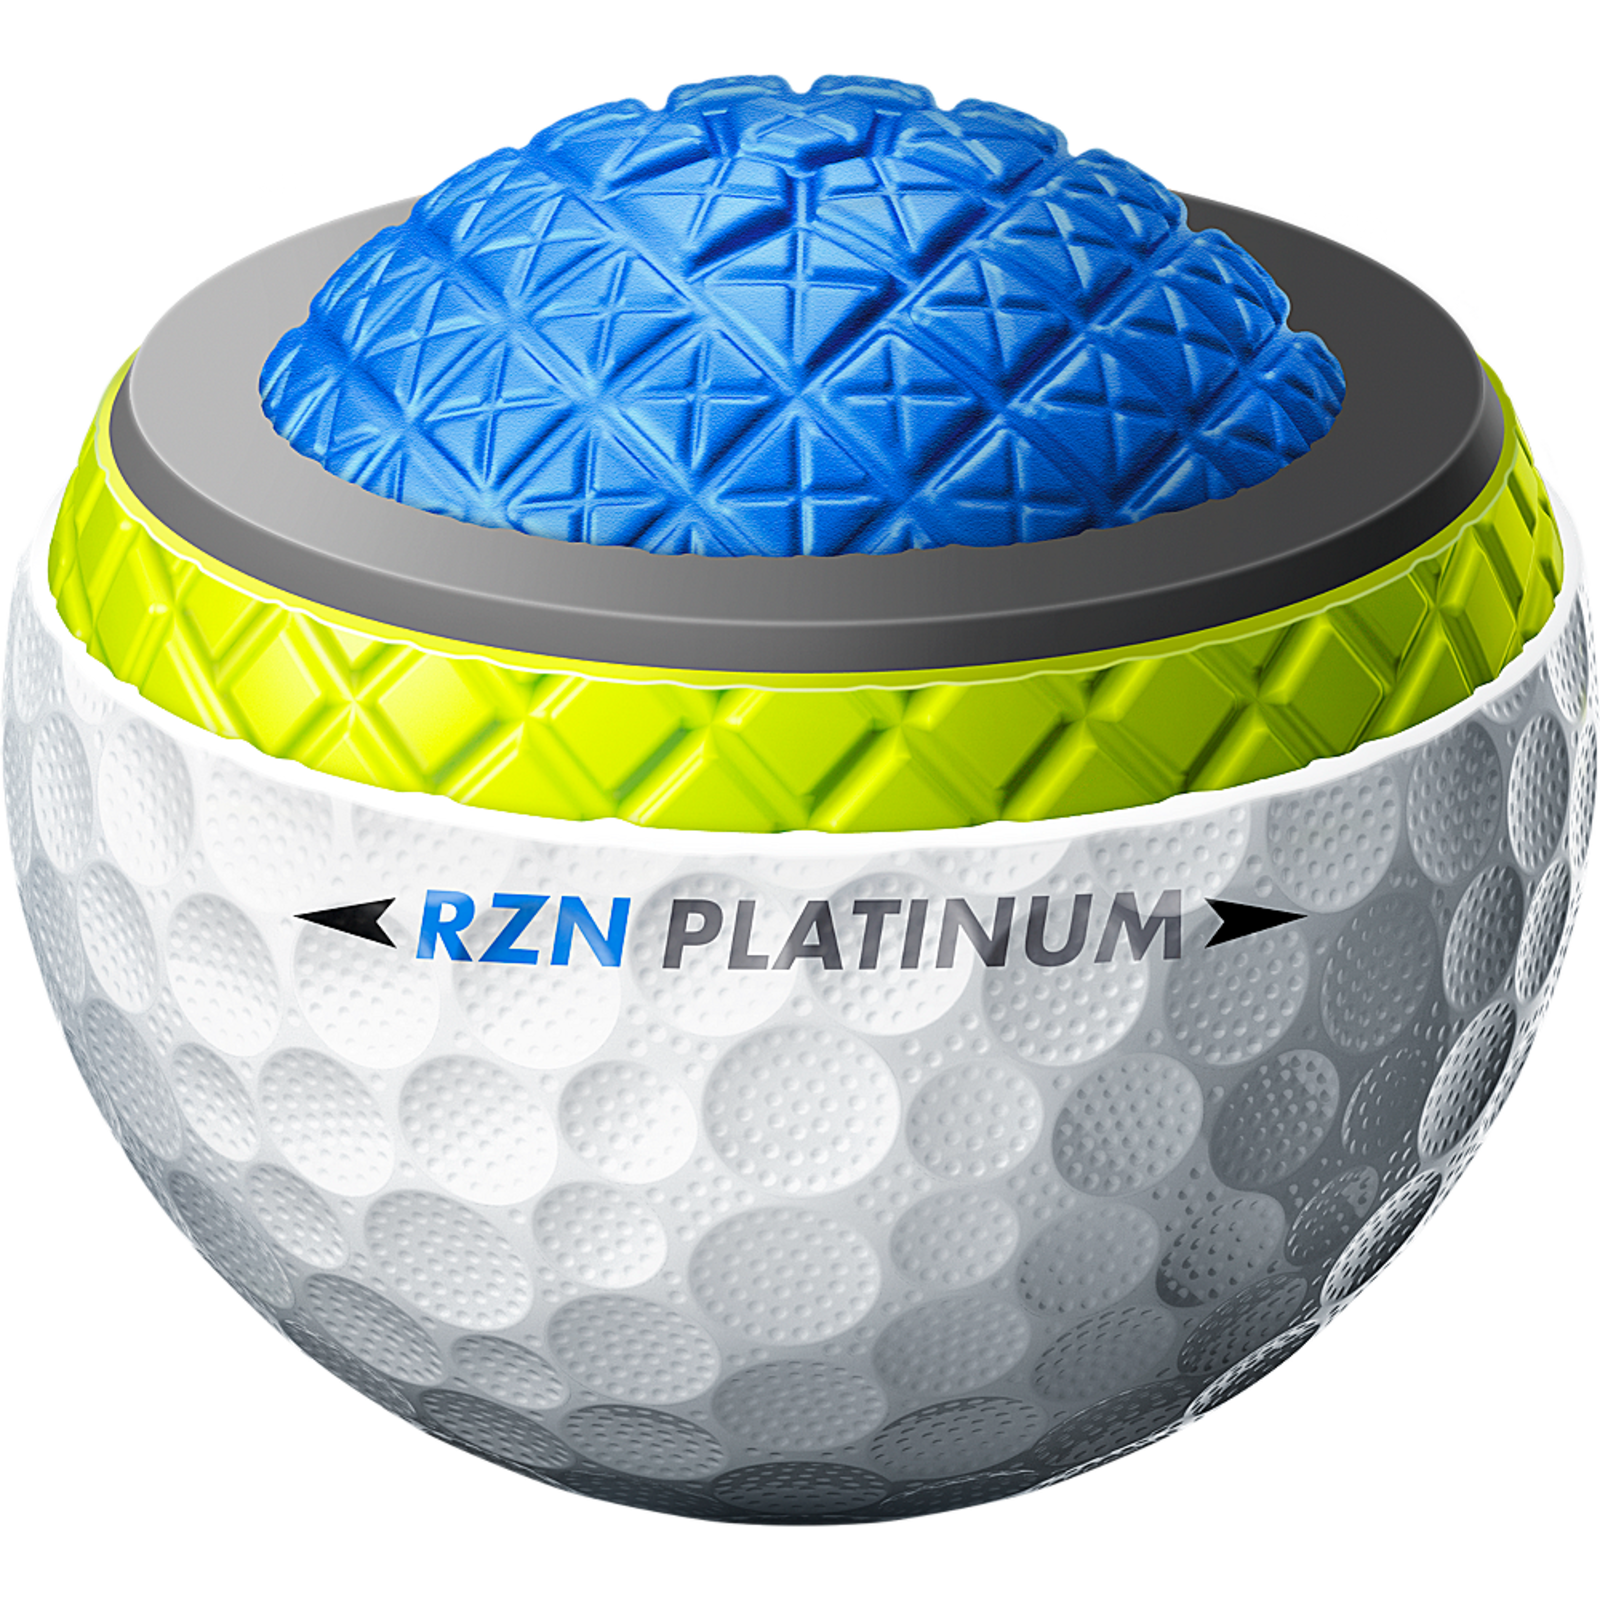 Blue golf ball png. Innovation shapes the new